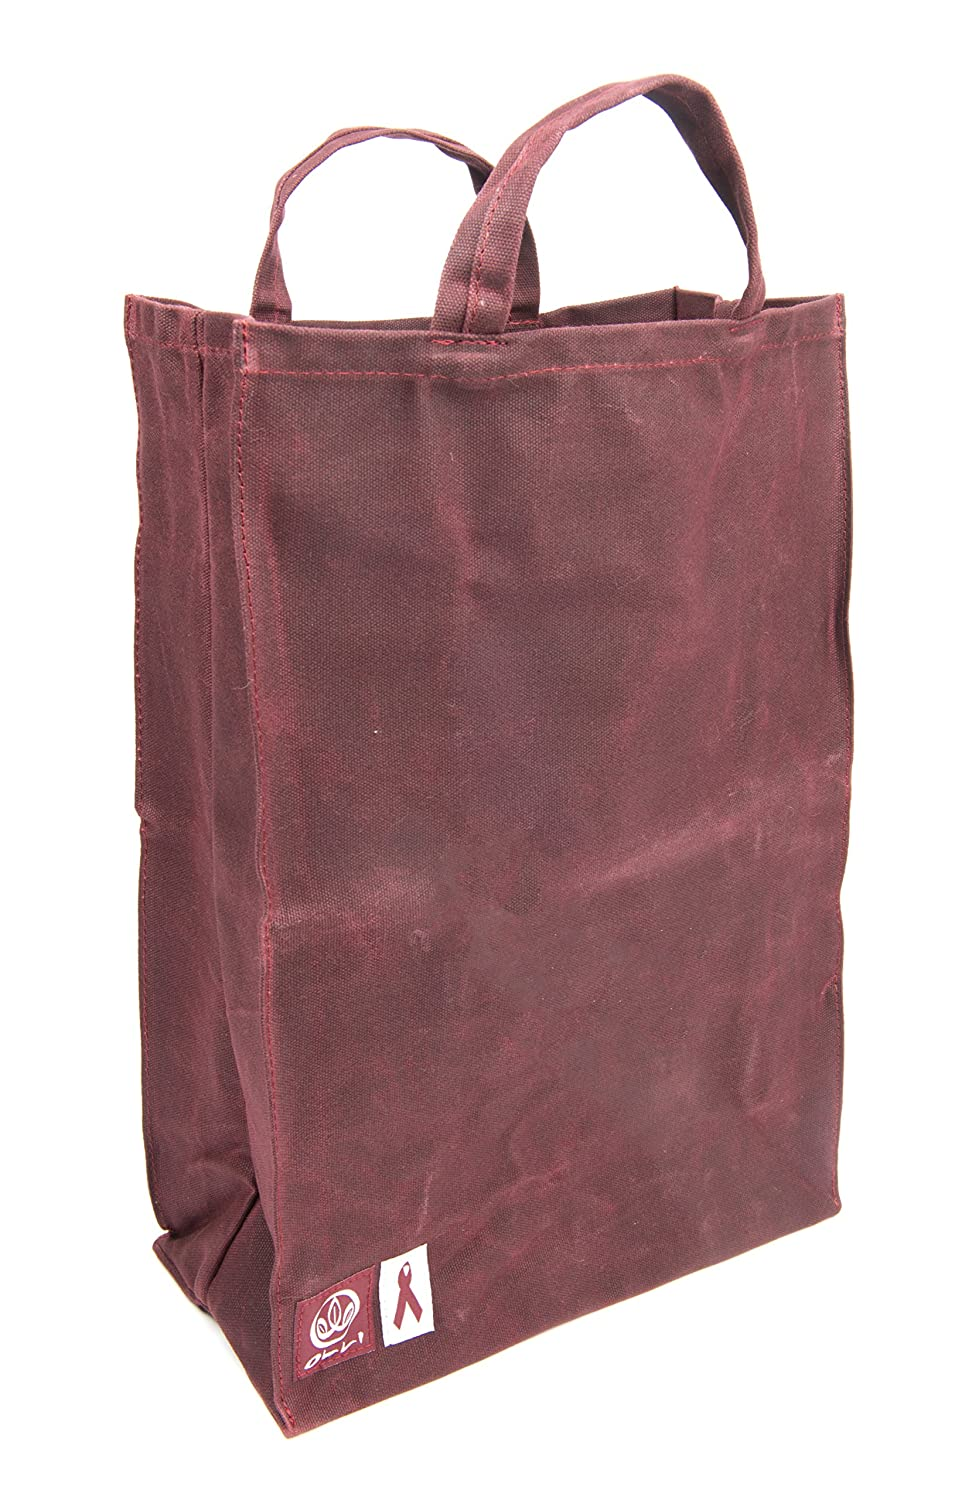 25cb575562a5 Olli Reusable Waxed Cotton Canvas Grocery Tote Bags - Organic and Vegan  Shopping Bags Burgundy